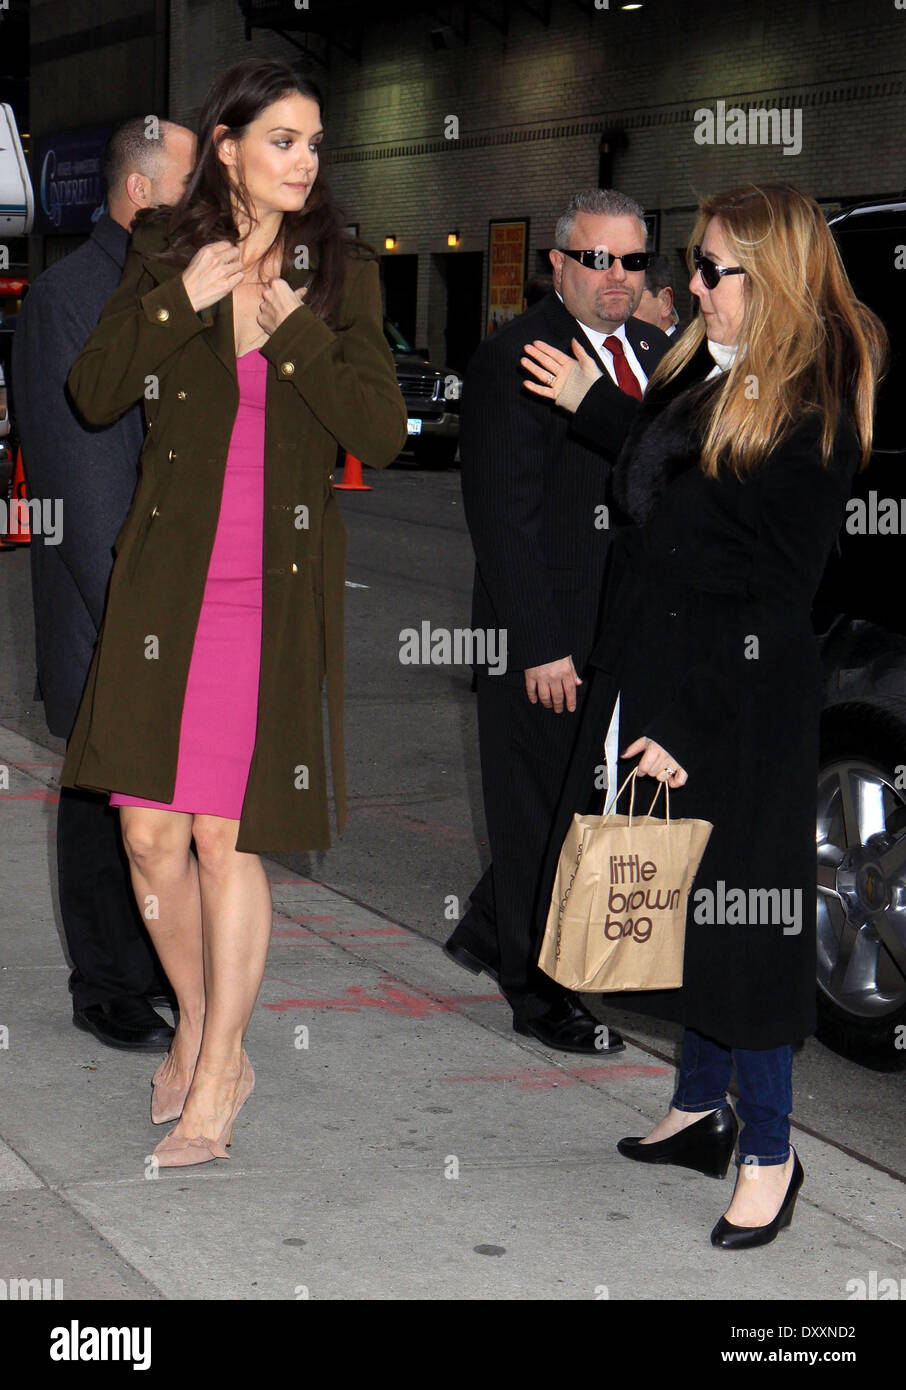 Katie Holmes and her publicist Leslie Sloan 'The Late Show with David Letterman' at the Ed Sullivan Theater - Arrivals Featuring: Katie Holmes and her publicist Leslie Sloan Where: New York City United States When: 20 Dec 2012 - Stock Image